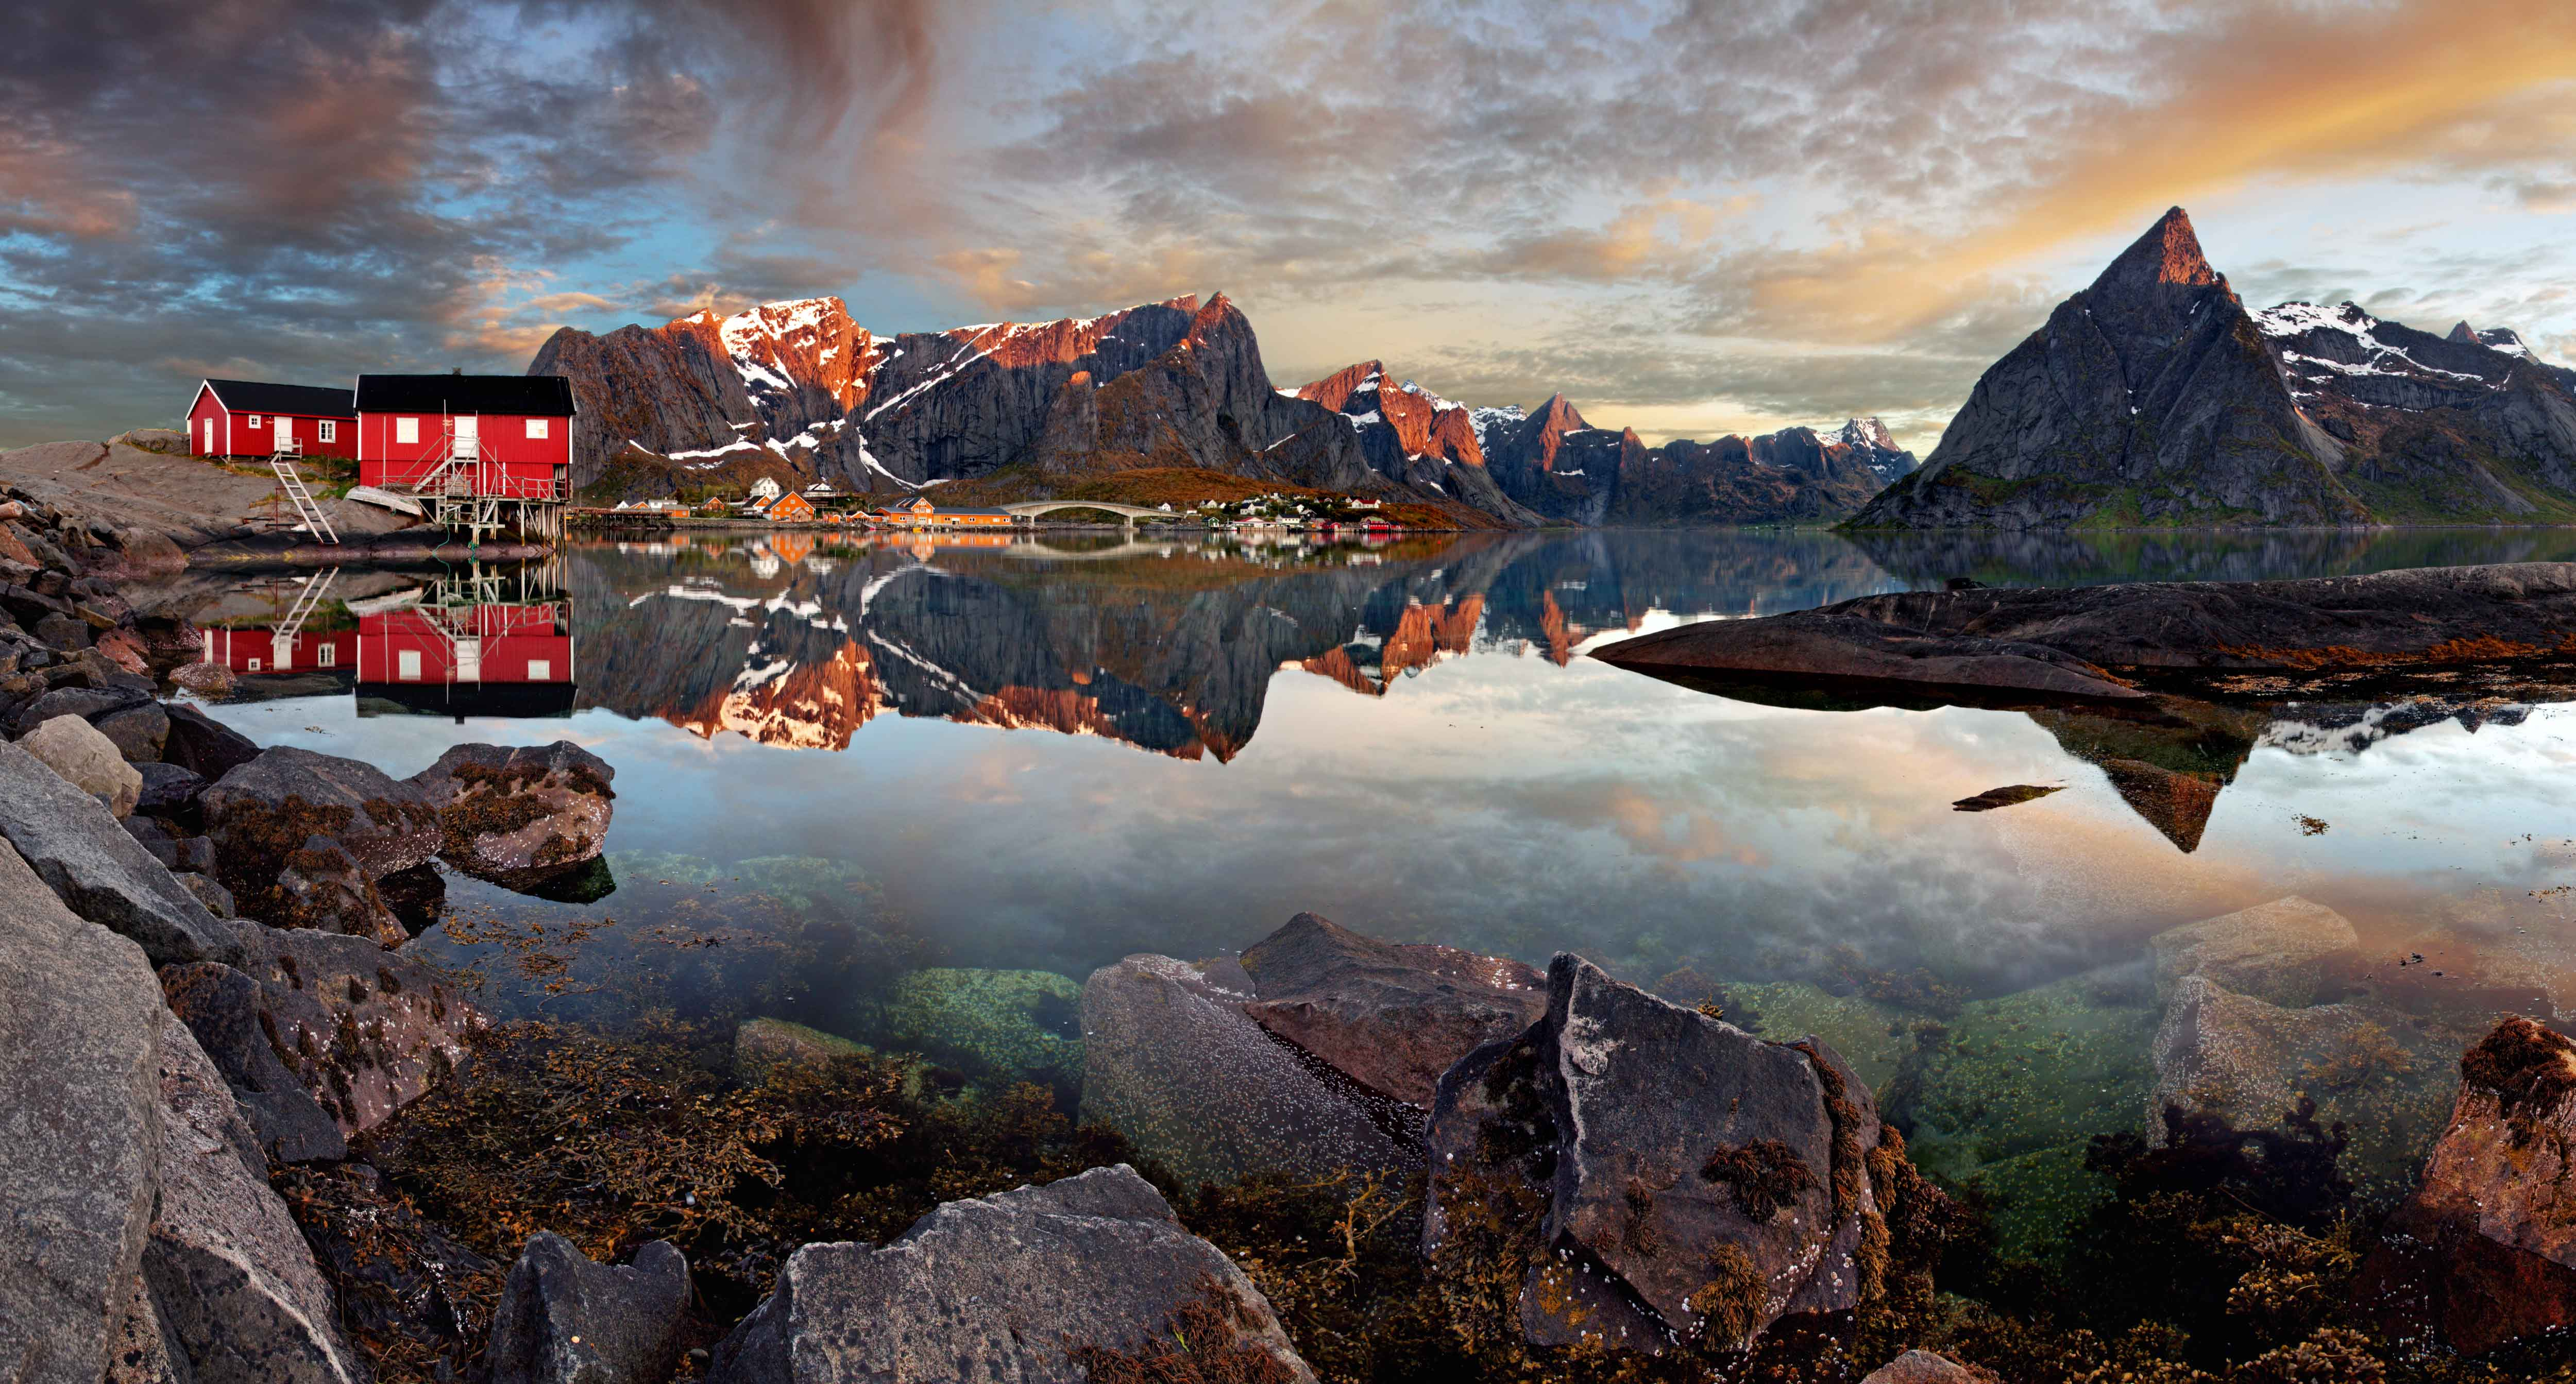 Lofoten archipelago in the county of Nordland, Norway.